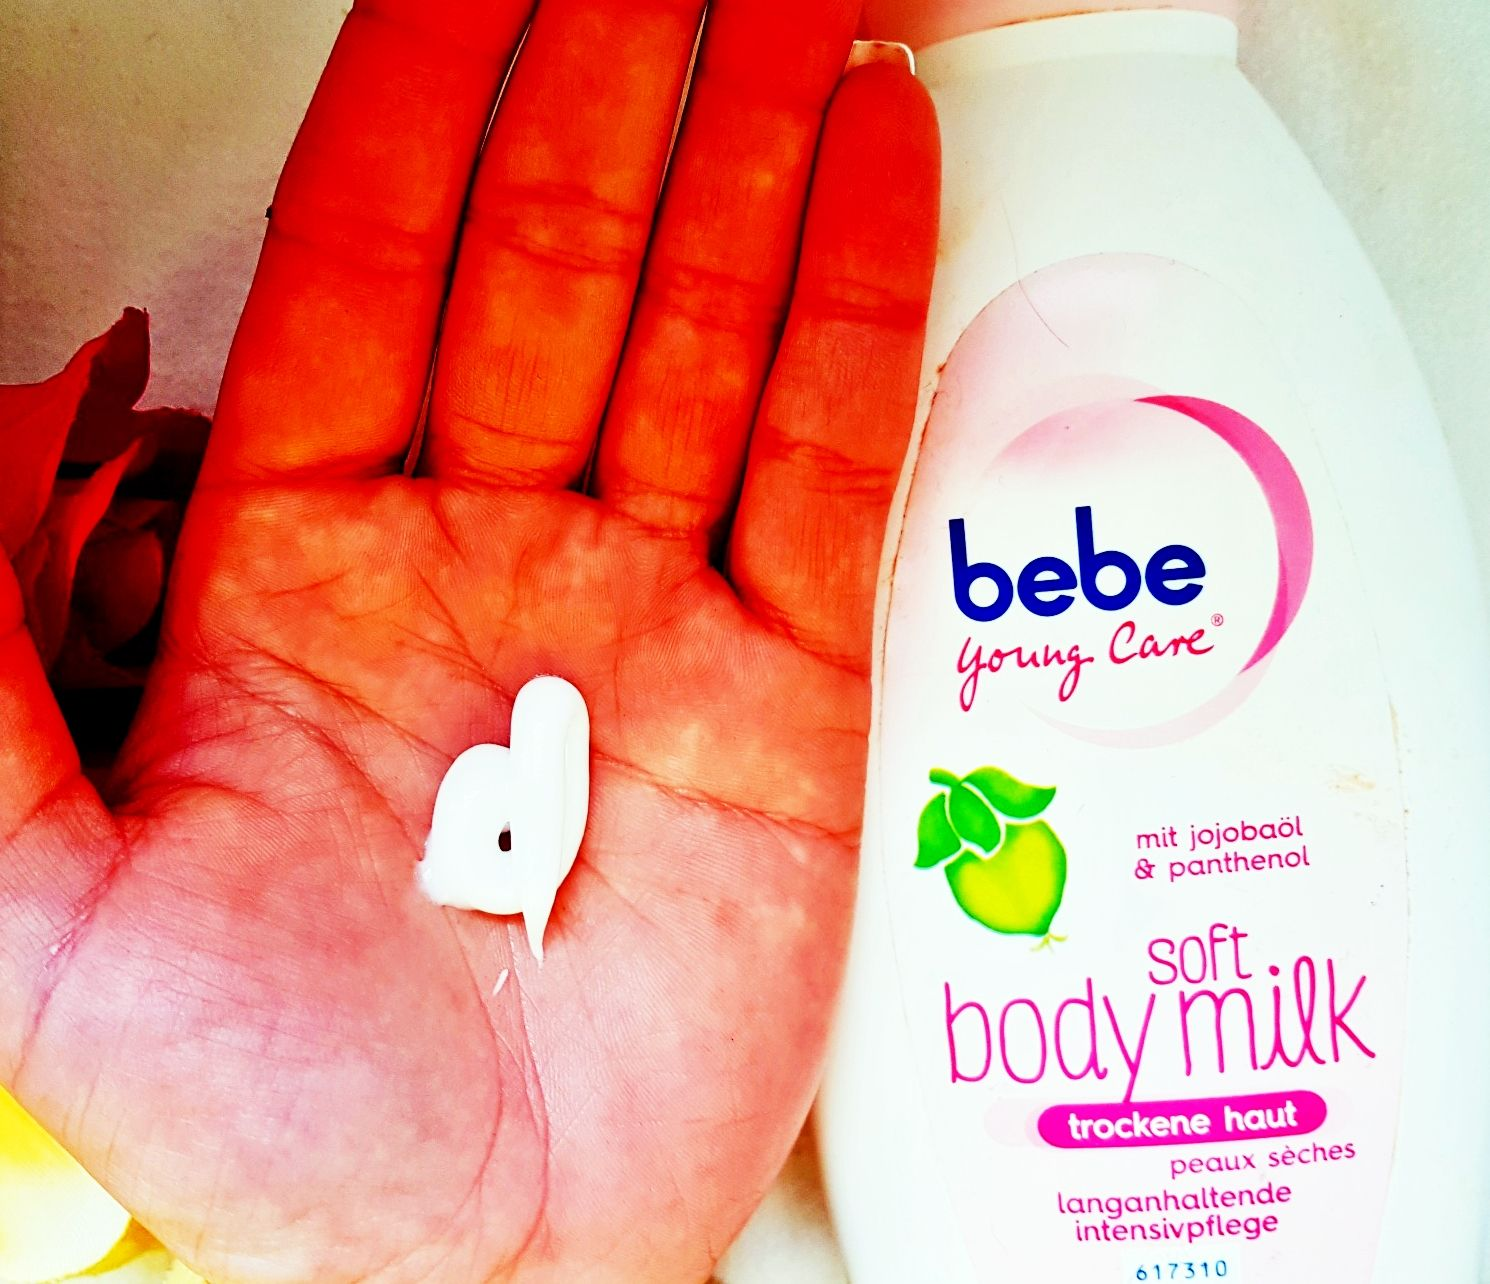 Bebe Young Care Soft Body Milk für trockene Haut